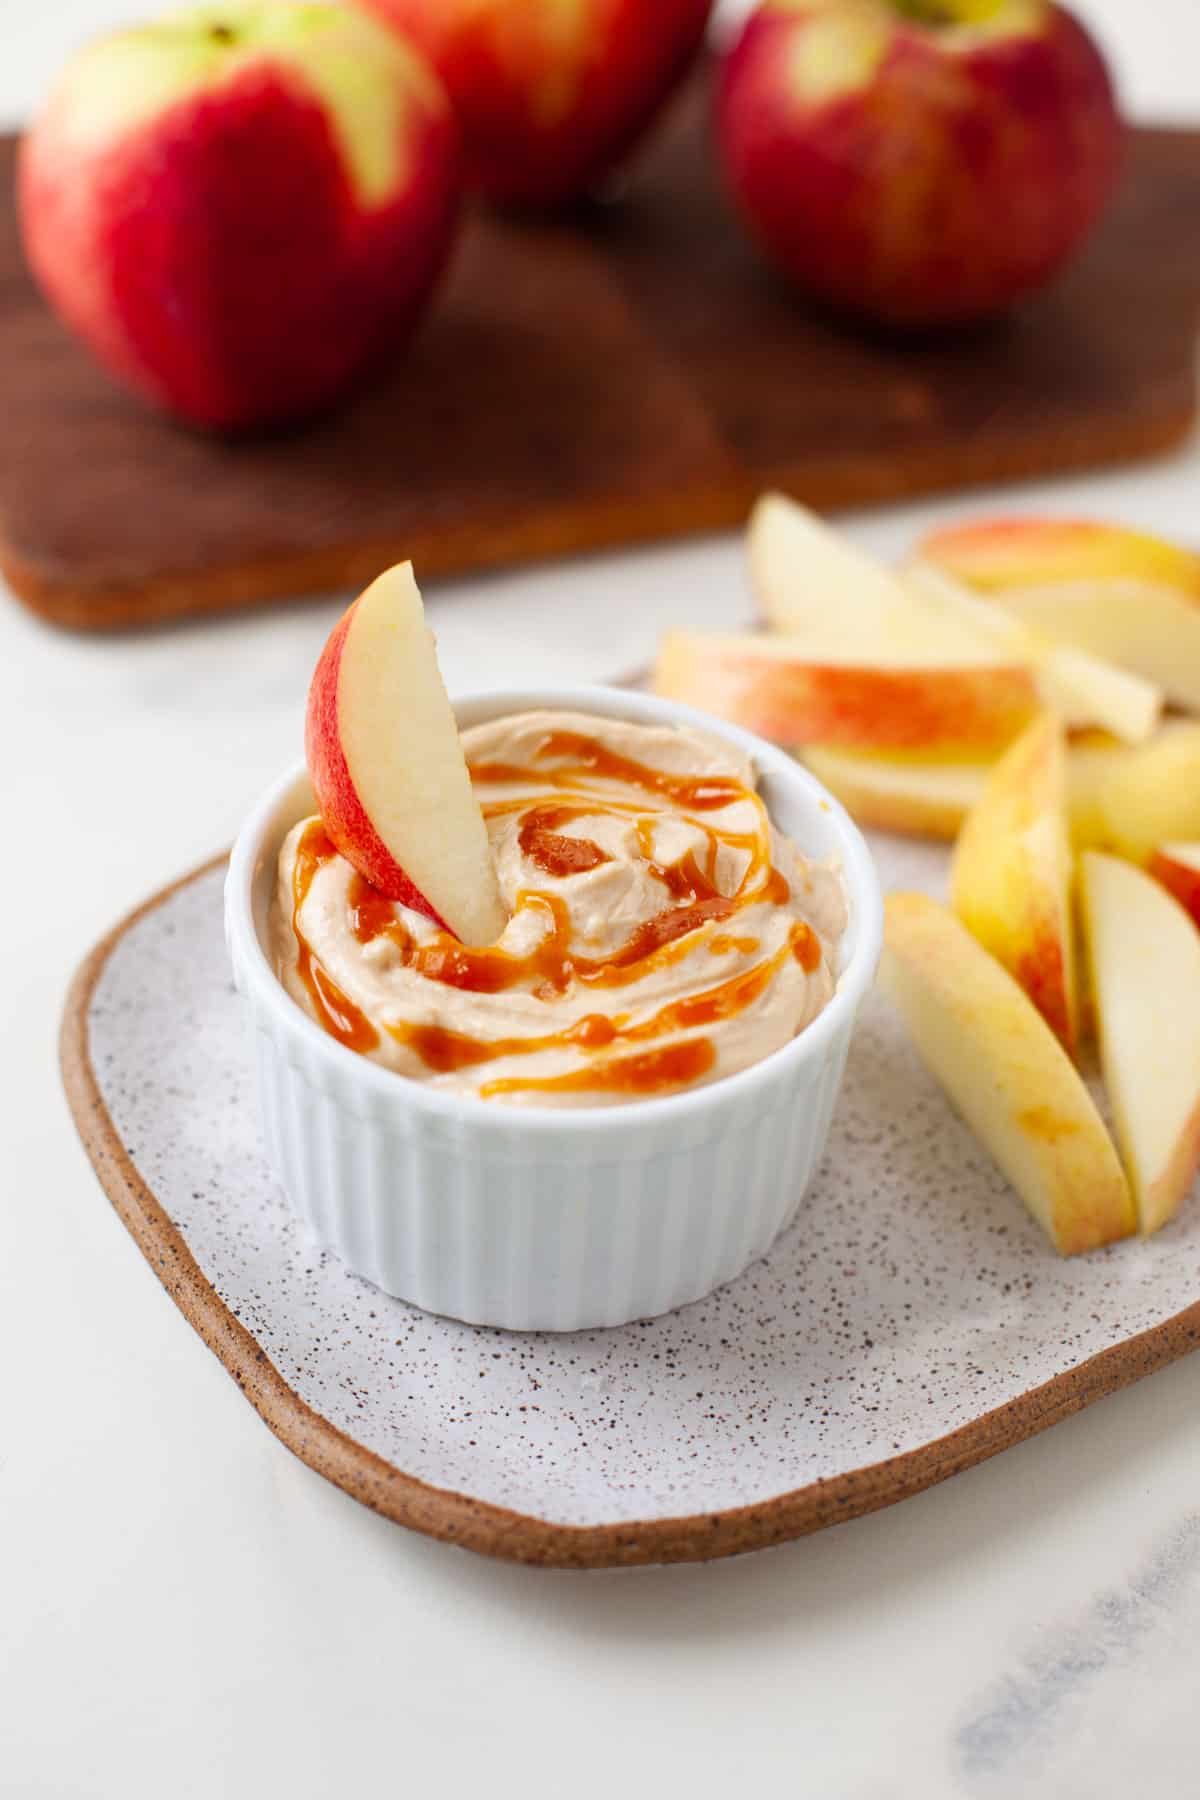 Salted Caramel Peanut Butter Apple Dip | The Foodie Dietitian